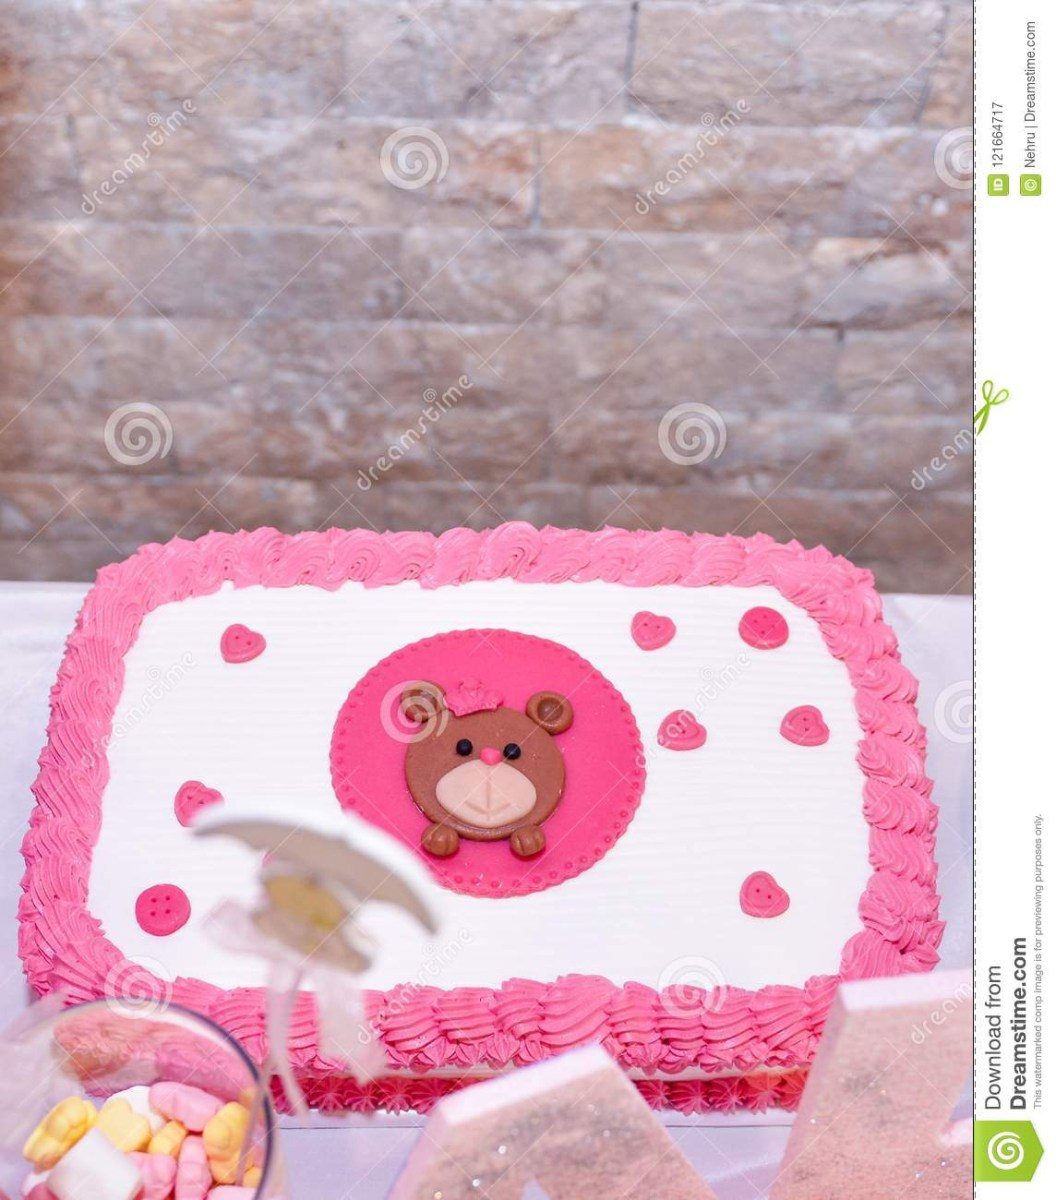 Fabulous Baby First Birthday Cake Ba Girl First Birthday Cake With Teddy Personalised Birthday Cards Veneteletsinfo